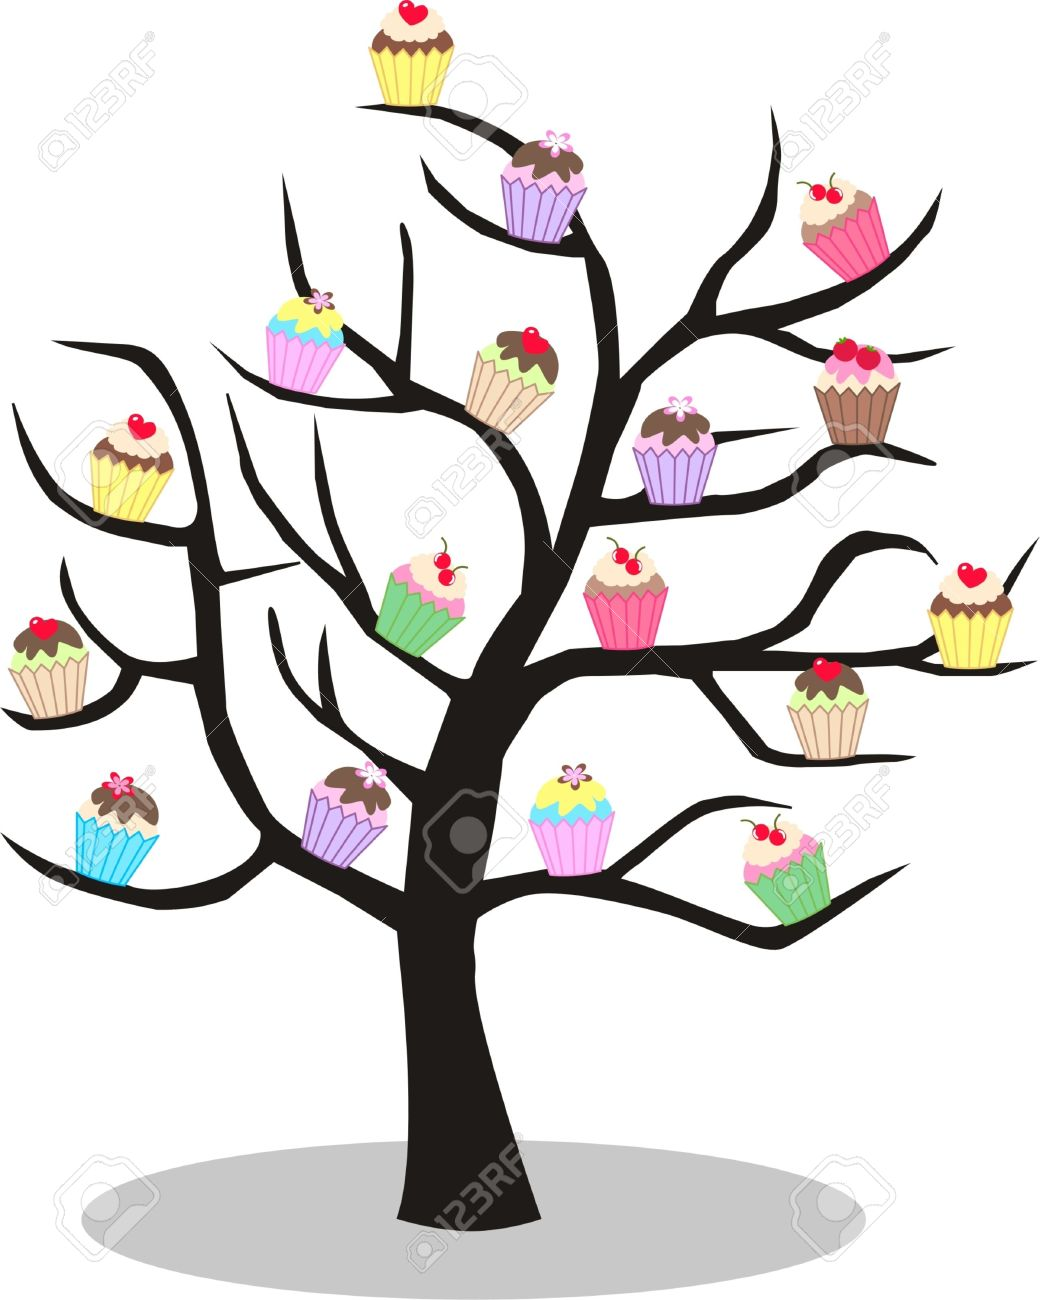 Cupcake Tree Royalty Free Cliparts, Vectors, And Stock.